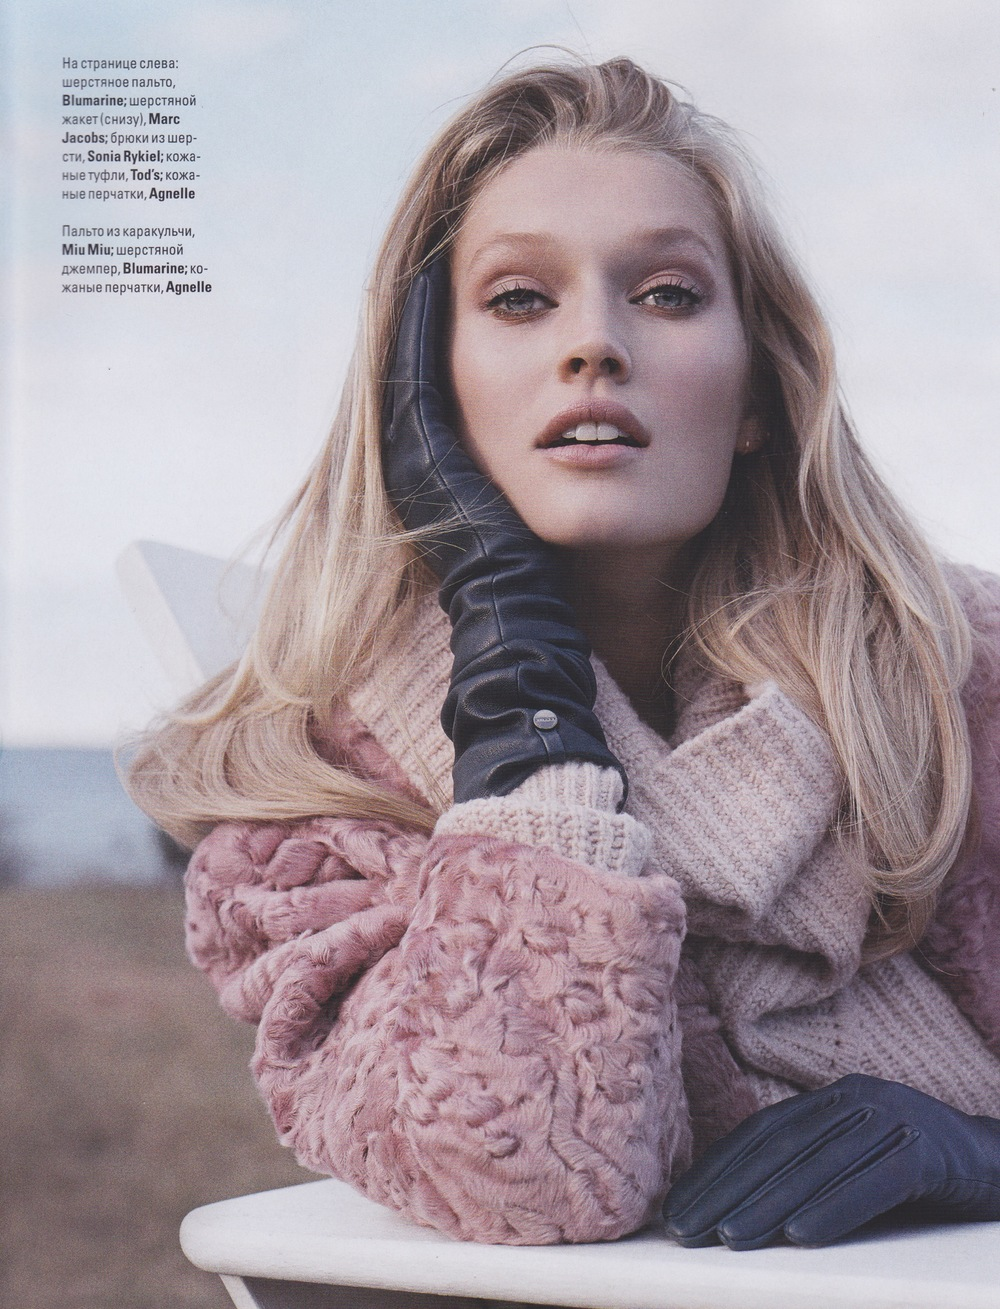 toni garrn photo shoot for vogue ukraine by benny horne and county fair productions 2